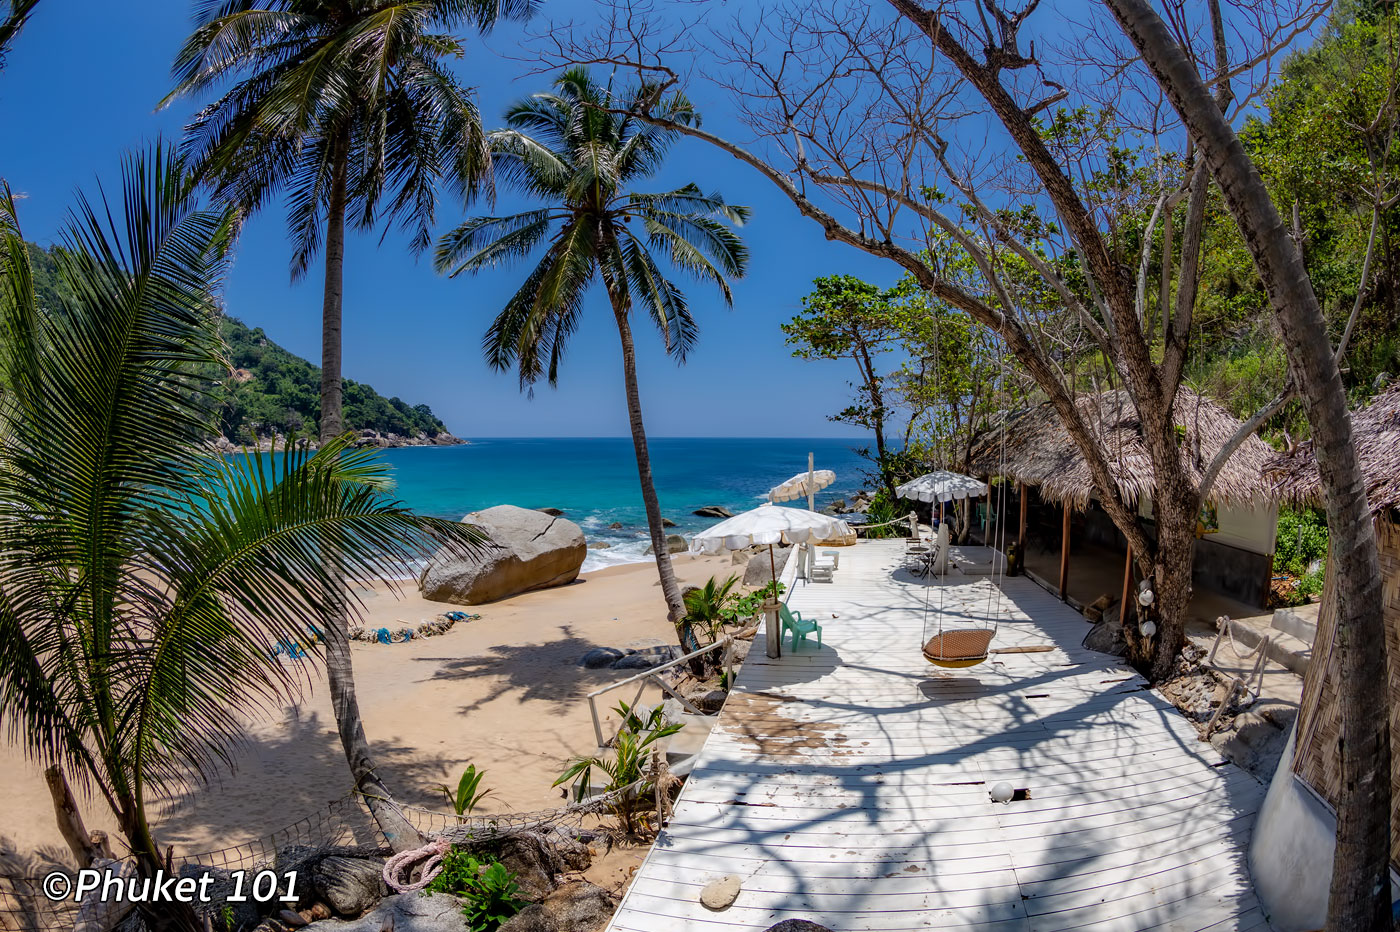 Nui Beach in Phuket, Thailand